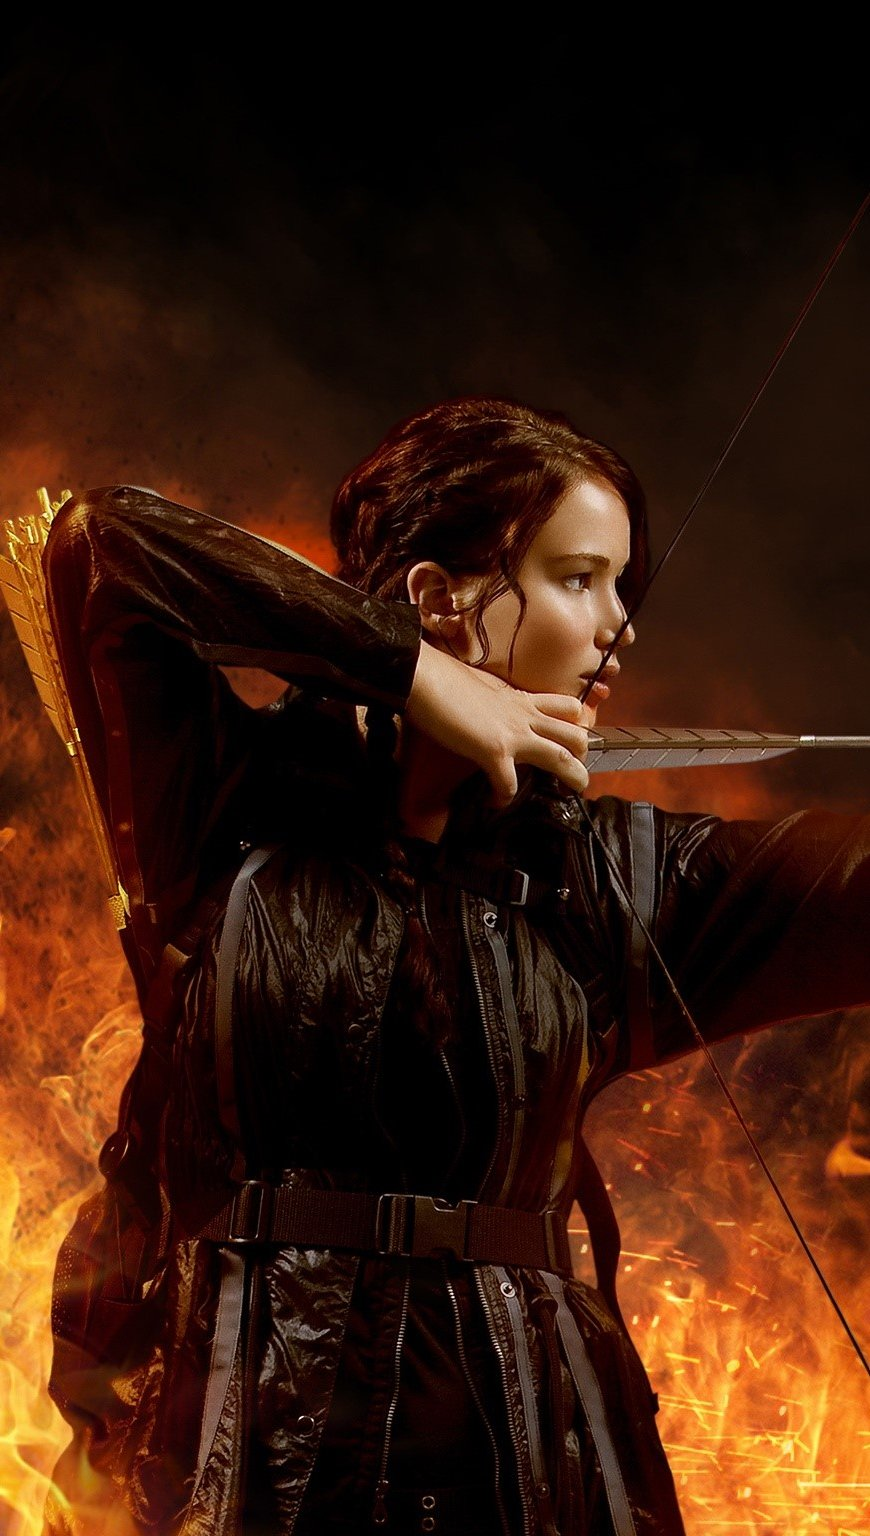 Wallpaper Jennifer Lawrence in The Hunger Games Vertical